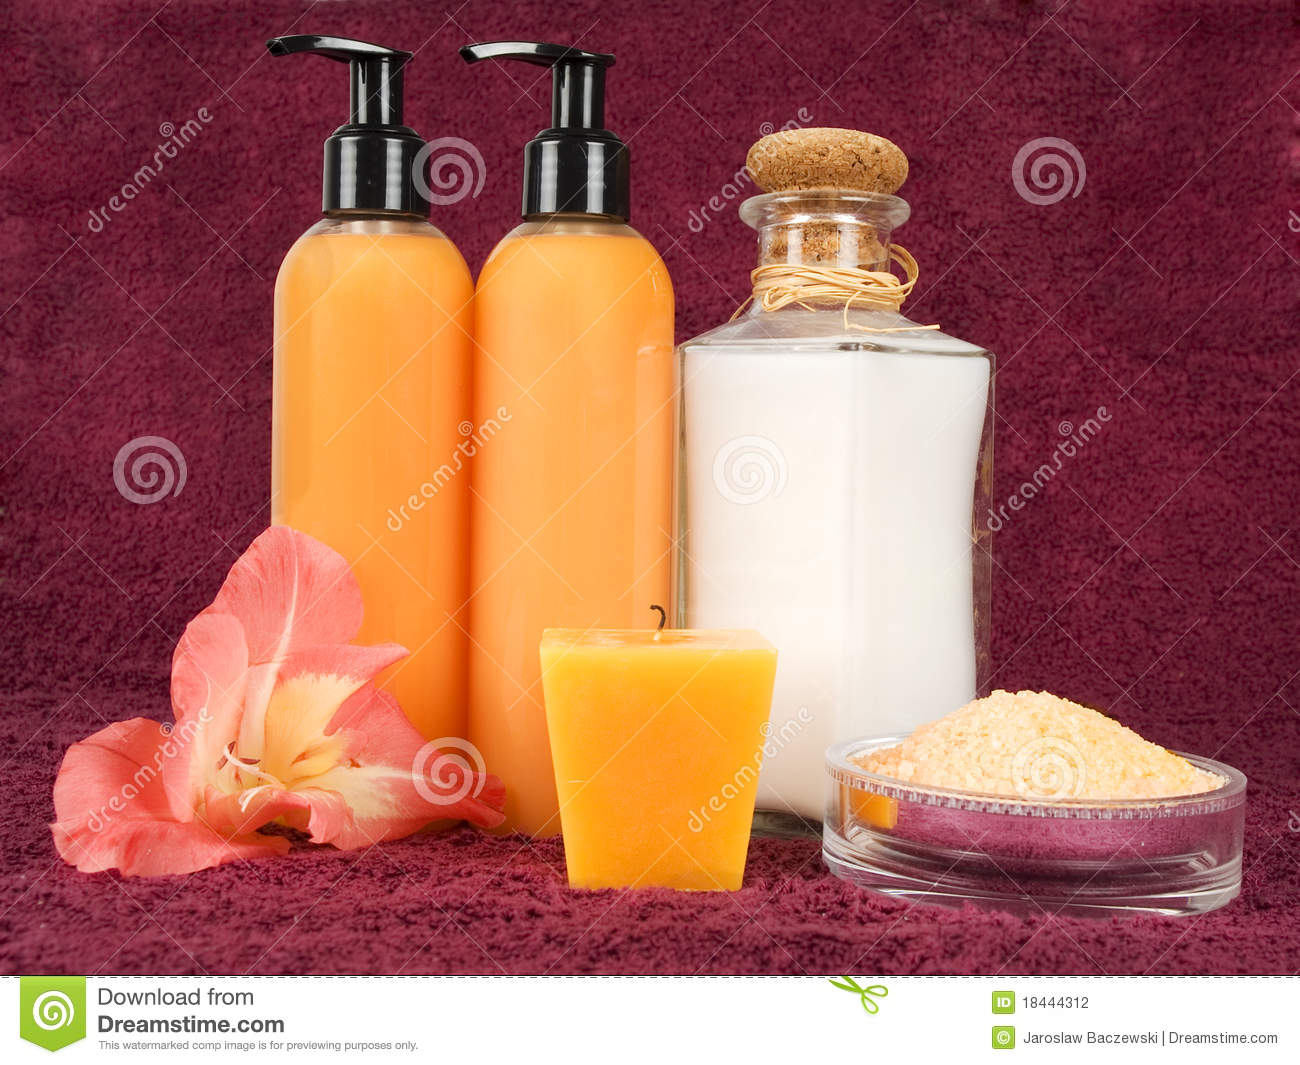 Bathroom essentials stock photography image 18444312 for Bathroom essentials